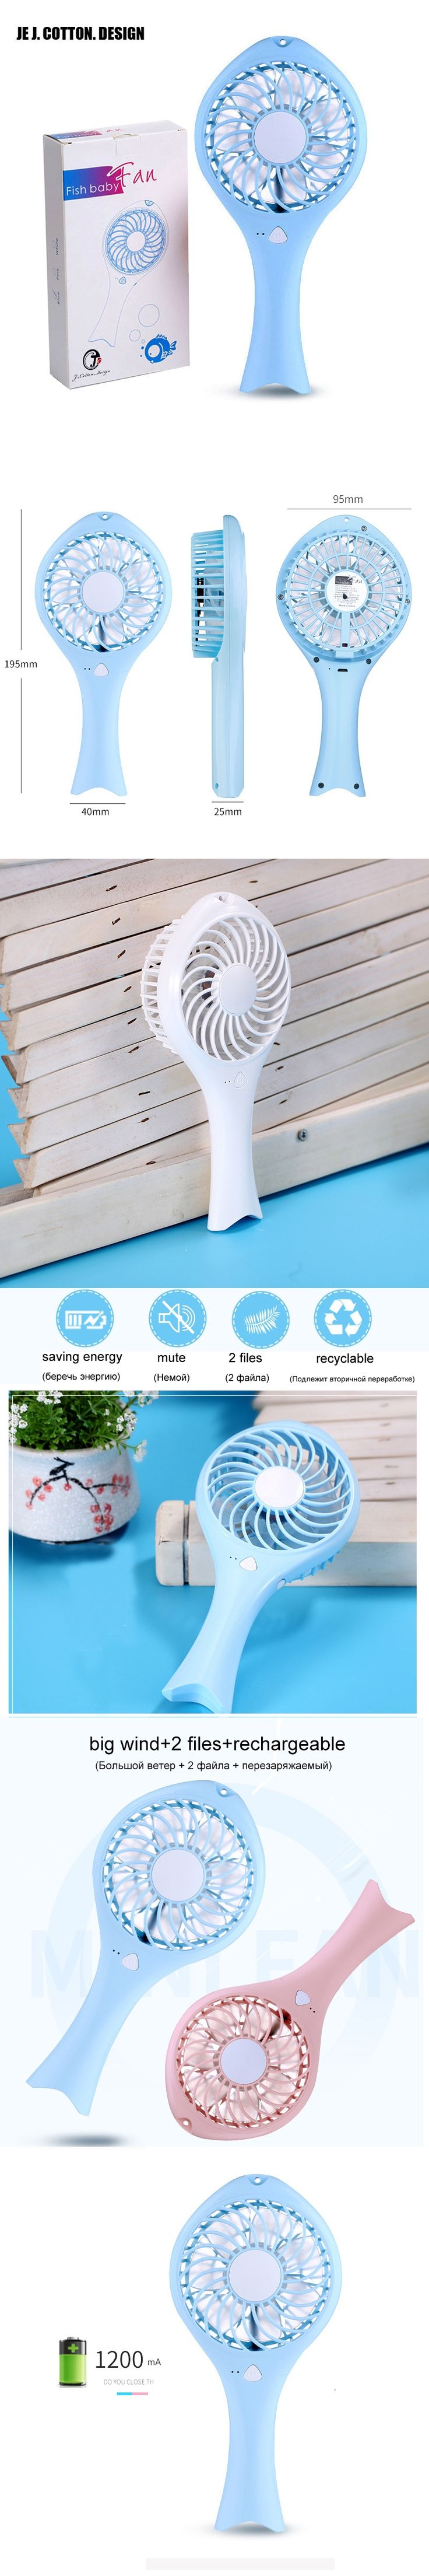 Portable Mini USB Fan for Home Outdoor Heldhand Rechargeable Air Fans with 1200mA Battery Air Conditioner Cooler with 2 Files